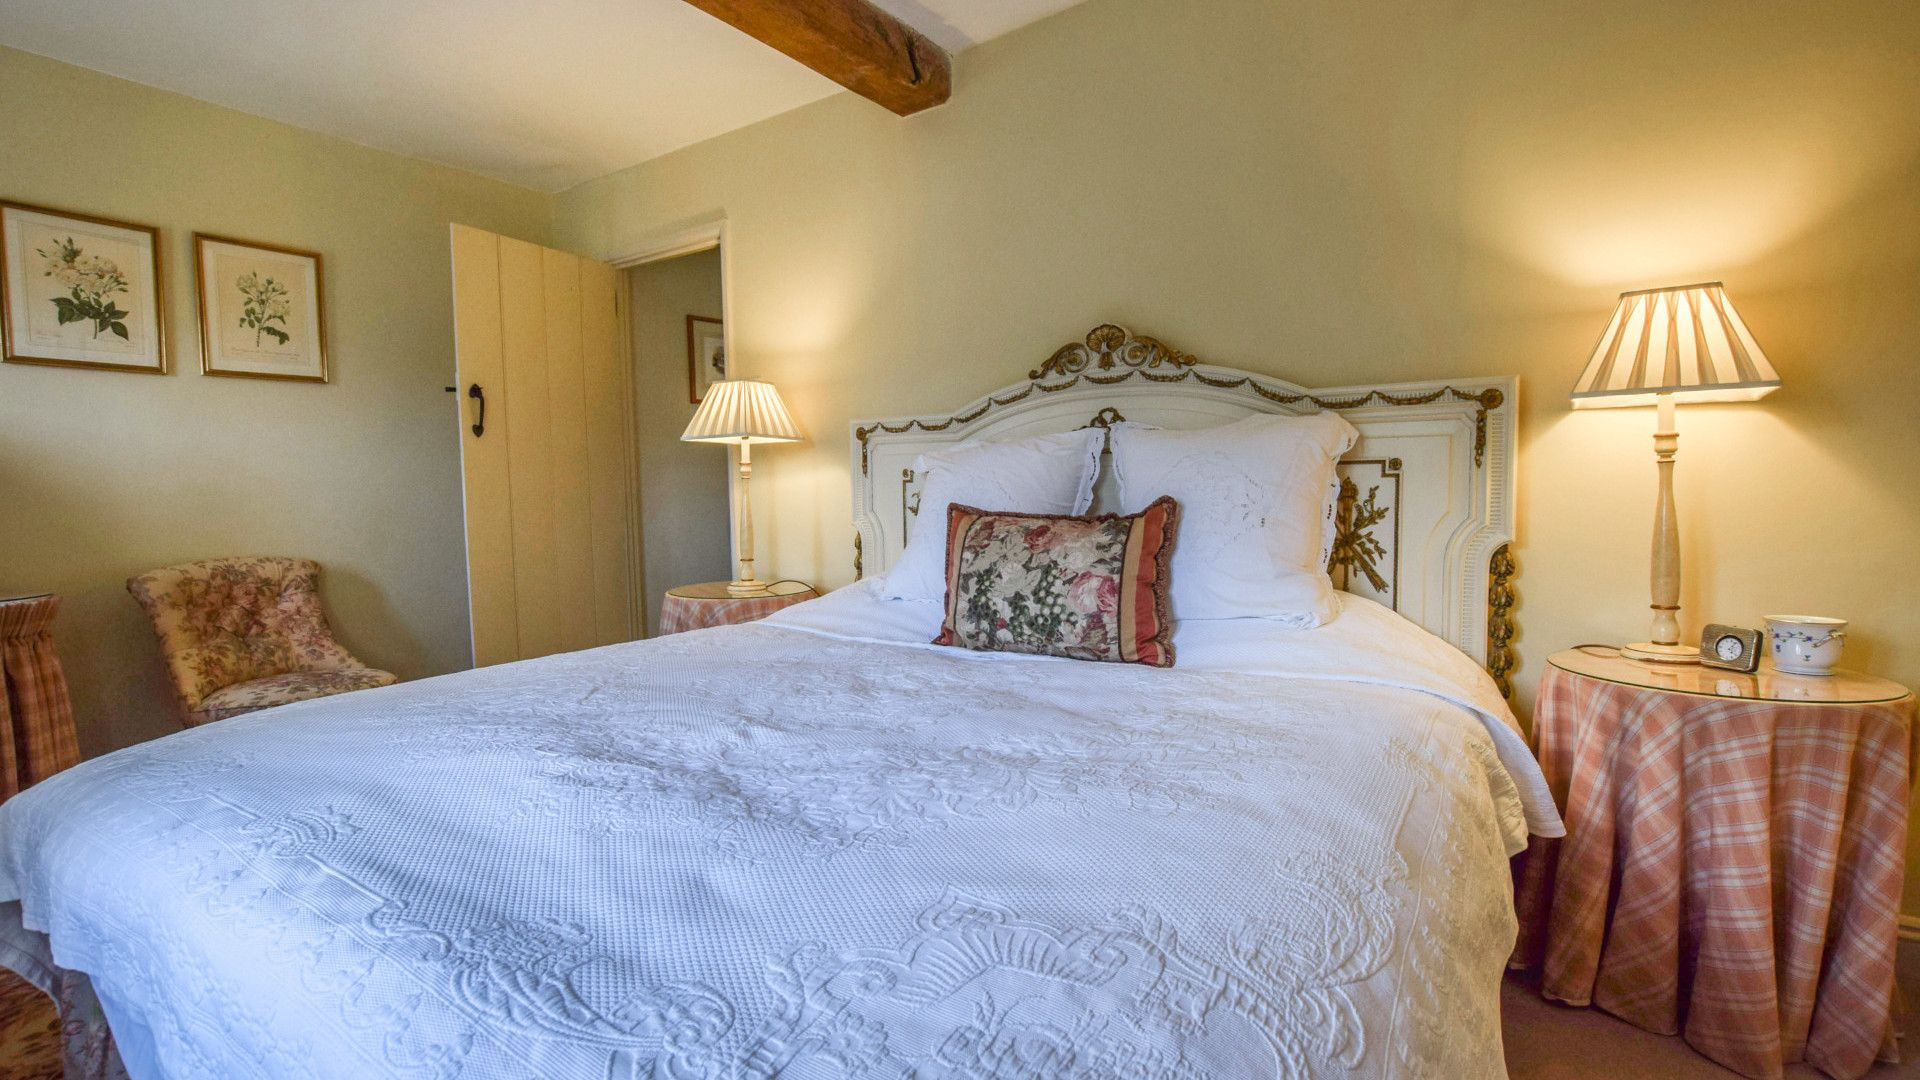 Bedroom Four, Grindstone Mill, Bolthole Retreats